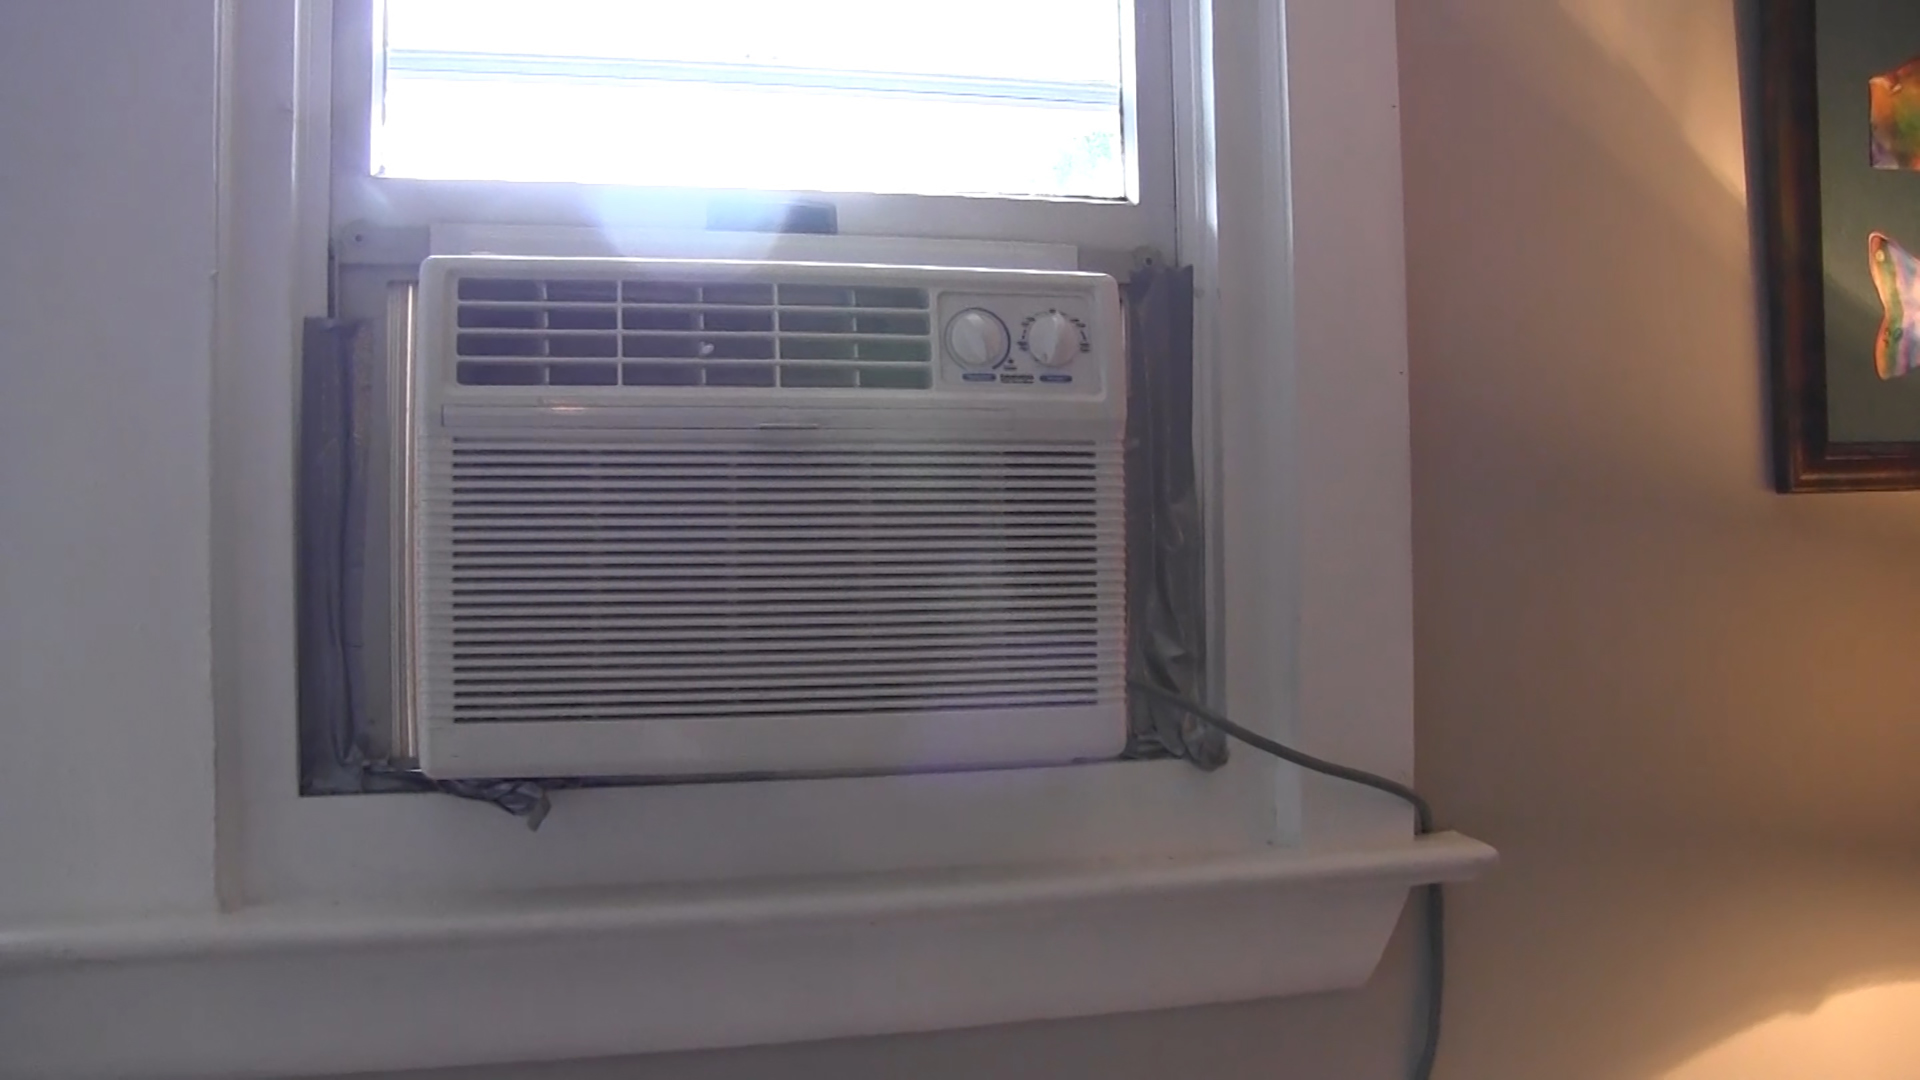 Modern Technology Small Room Air Conditioners Unit System More From Consumer Reports. How to Properly Size a Window Air Conditioner